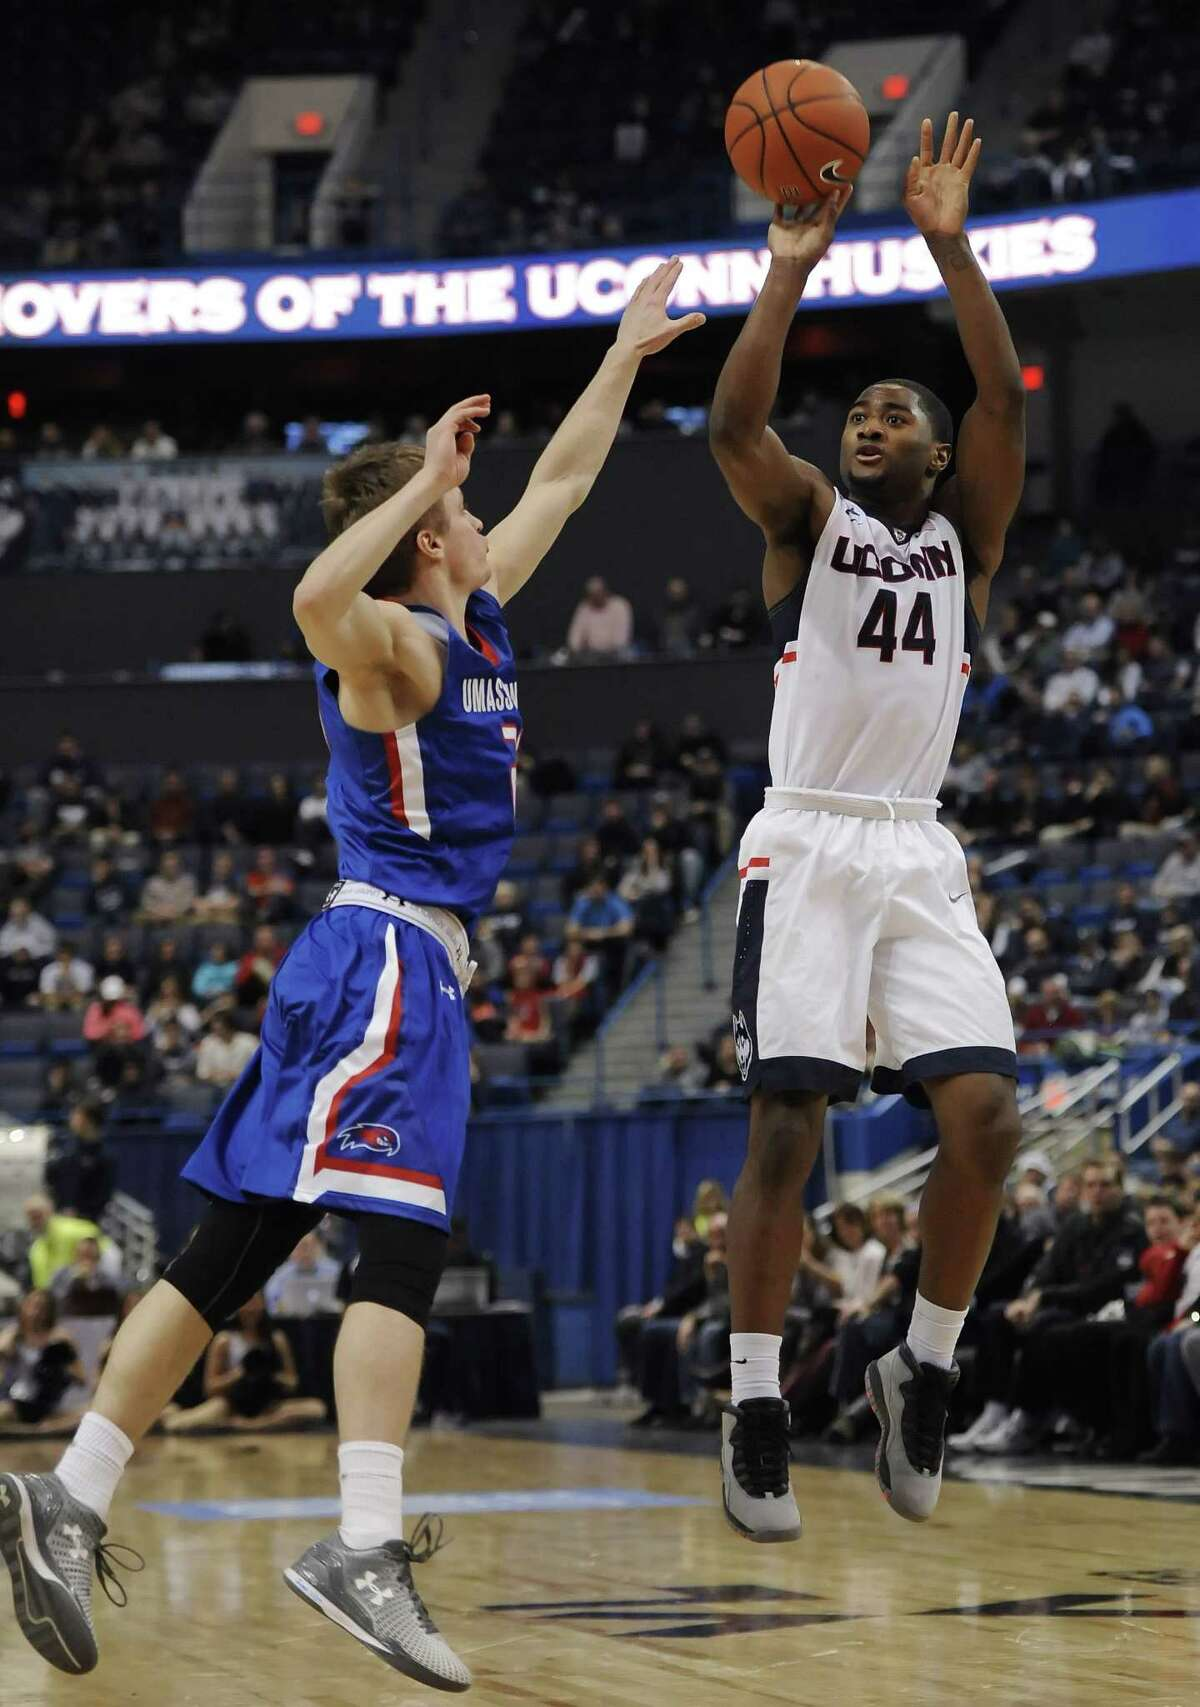 UConn's Rodney Purvis, right, shoots over UMass-Lowell's DJ Mlachnik, left, in the second half of Sunday's game in Hartford.